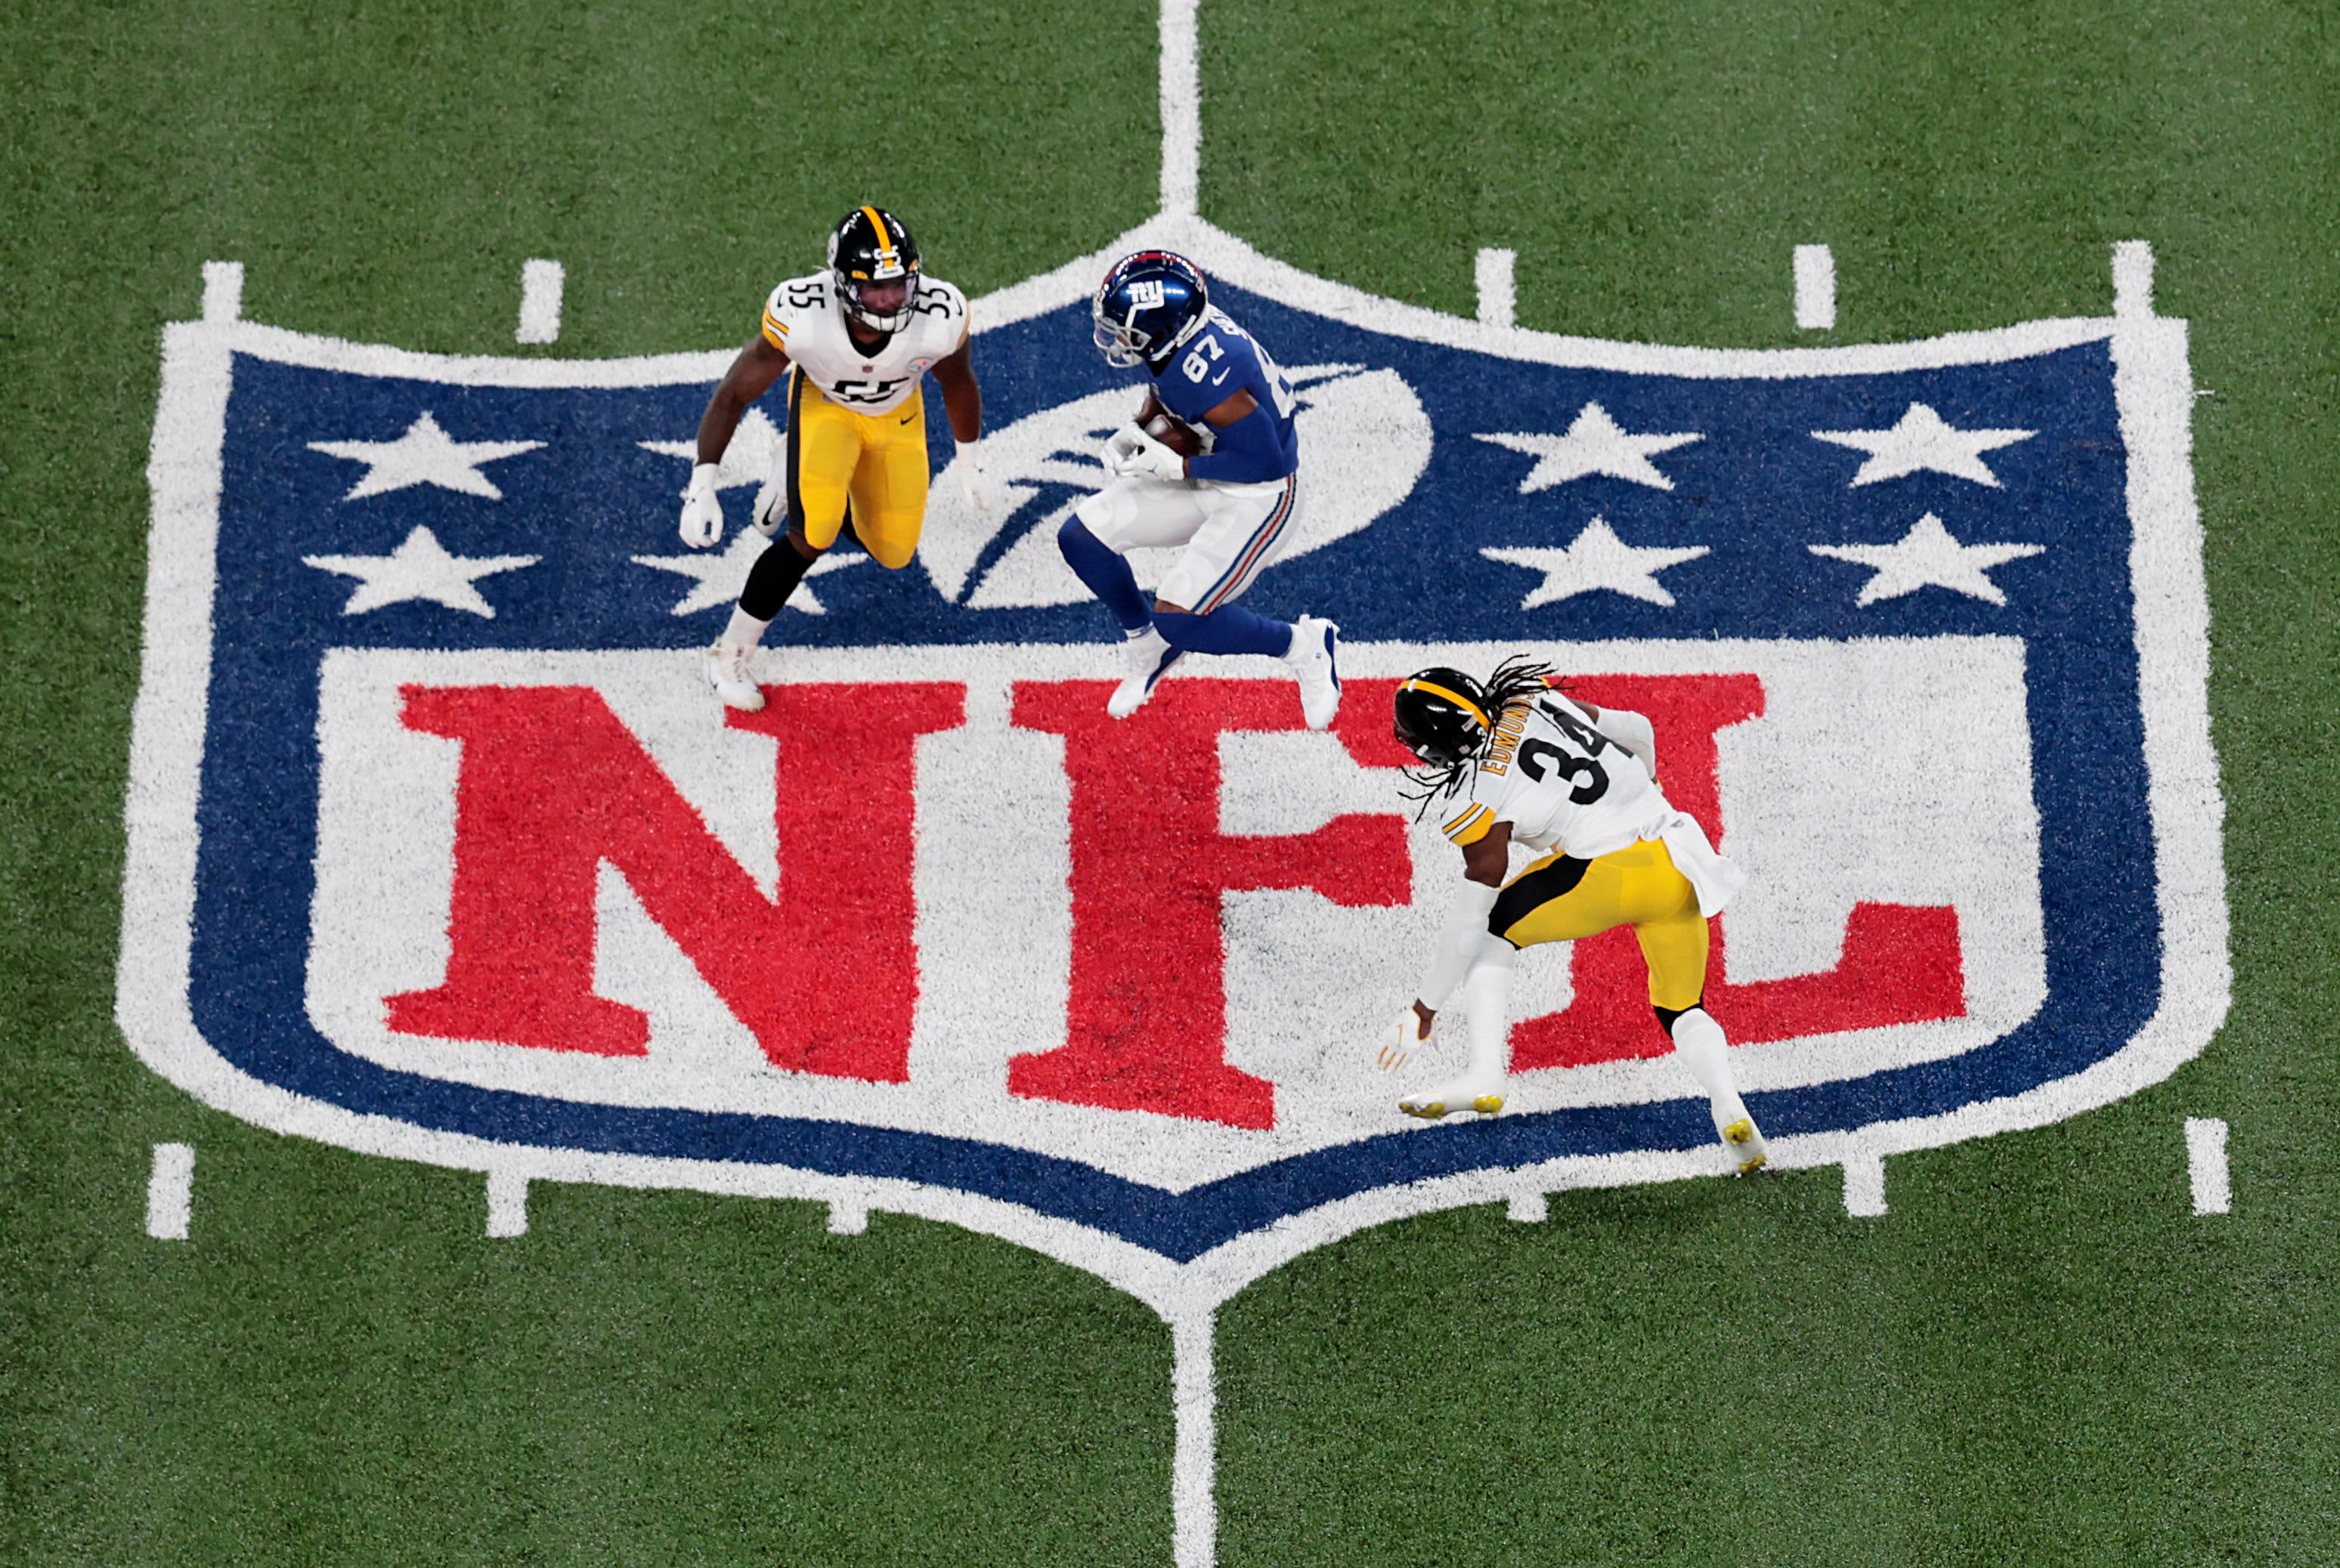 With media deals total, NFL eyes over $100 million per year for its data rights thumbnail